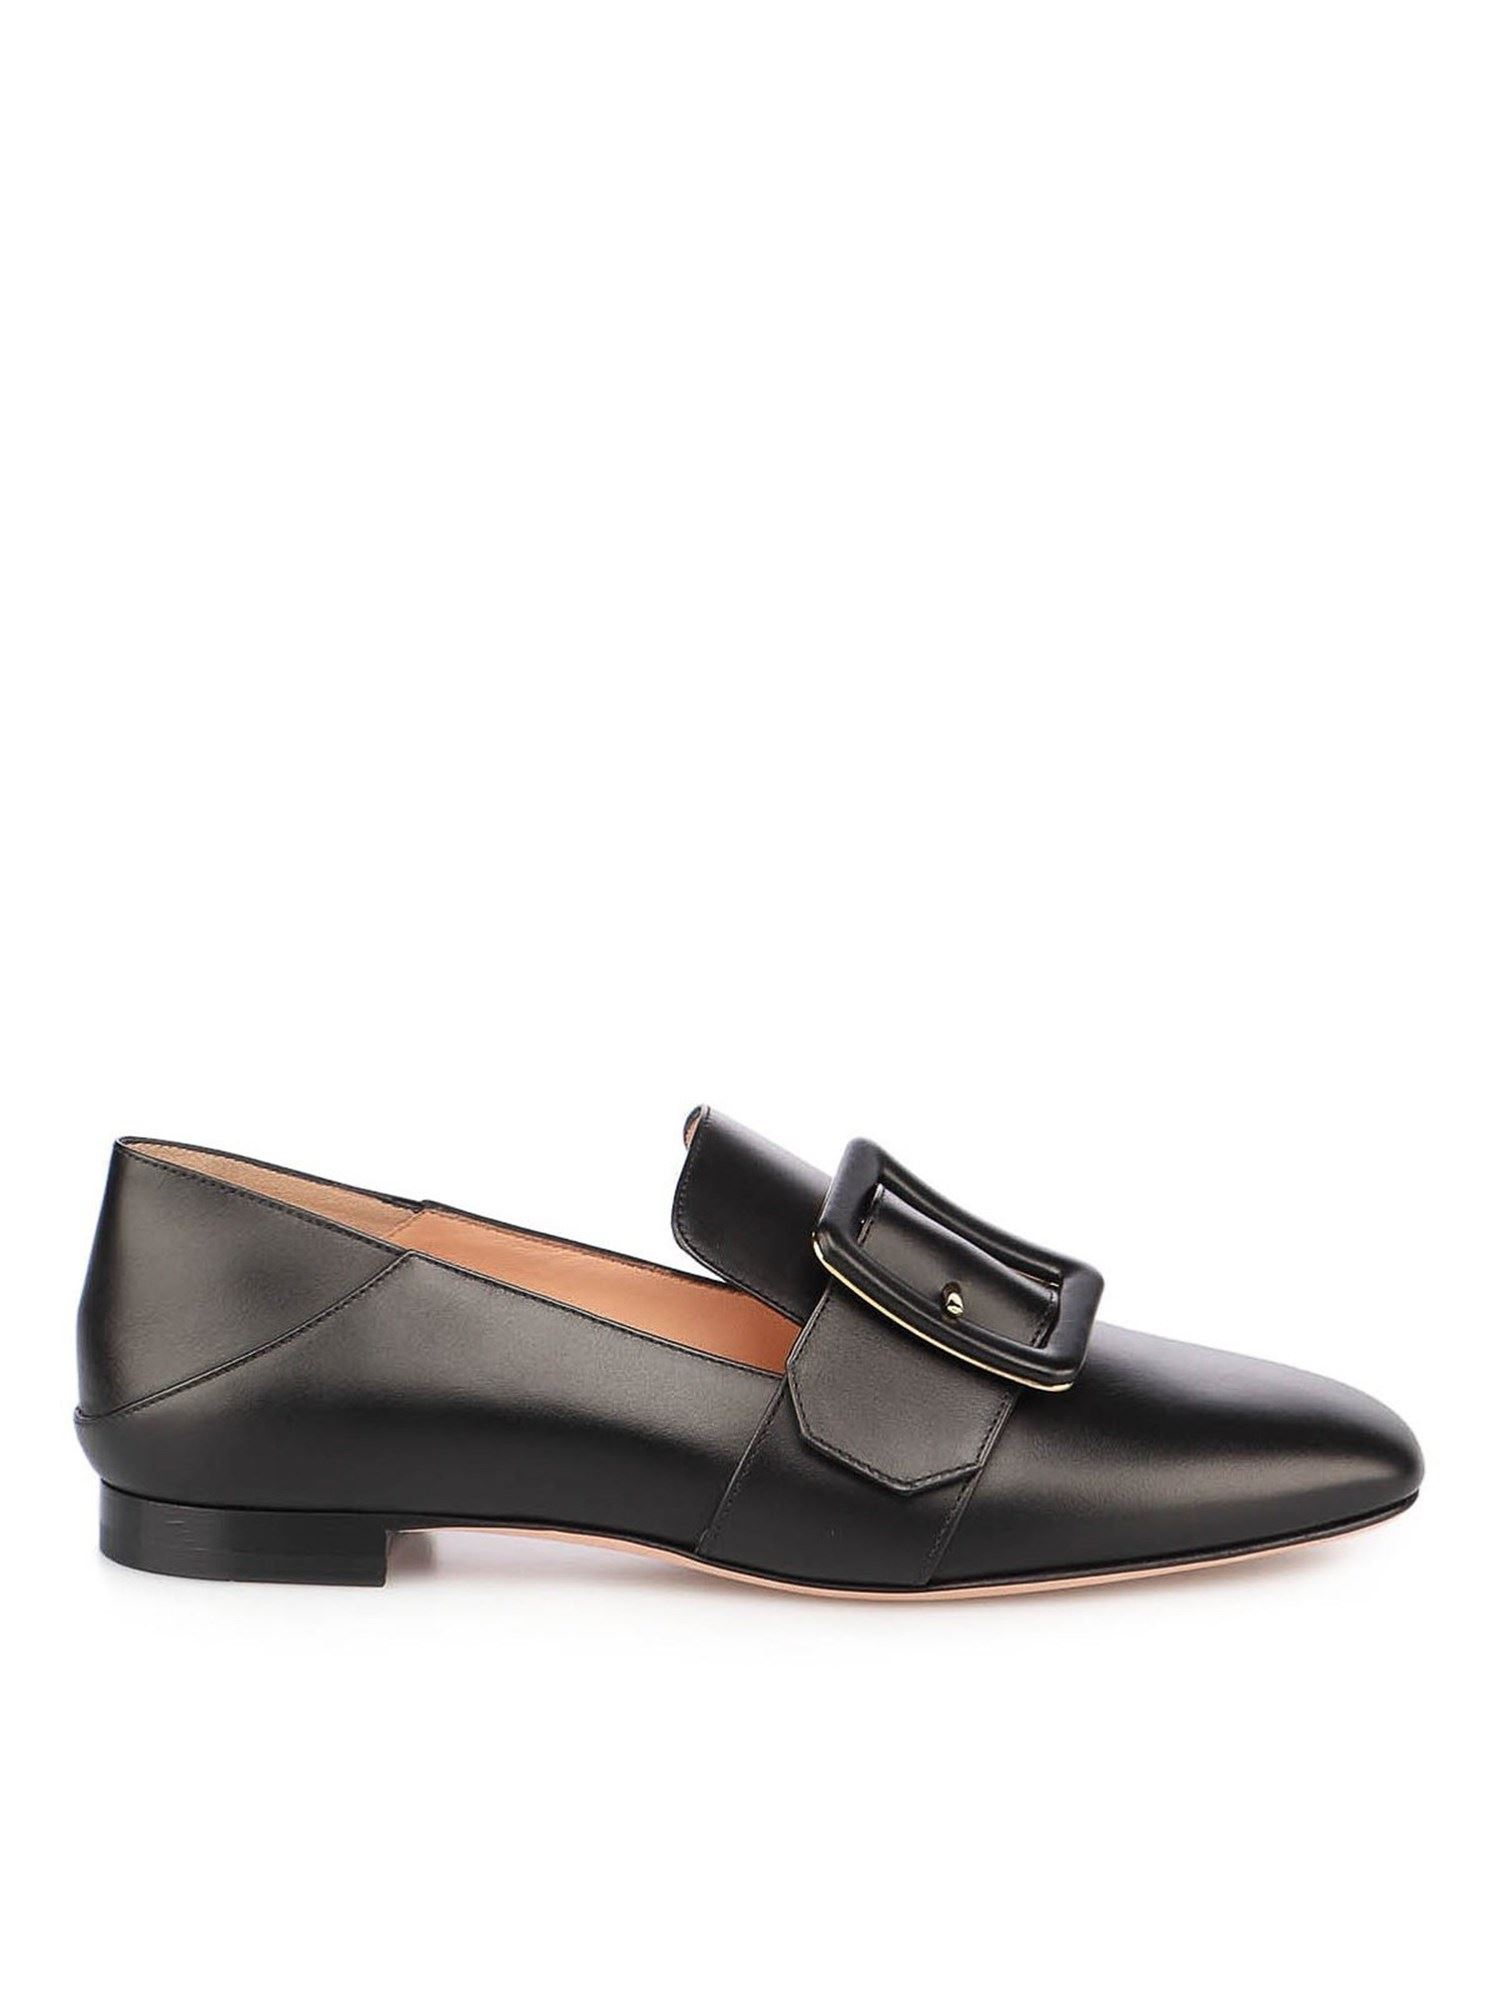 Bally JANELLE LOAFERS IN BLACK